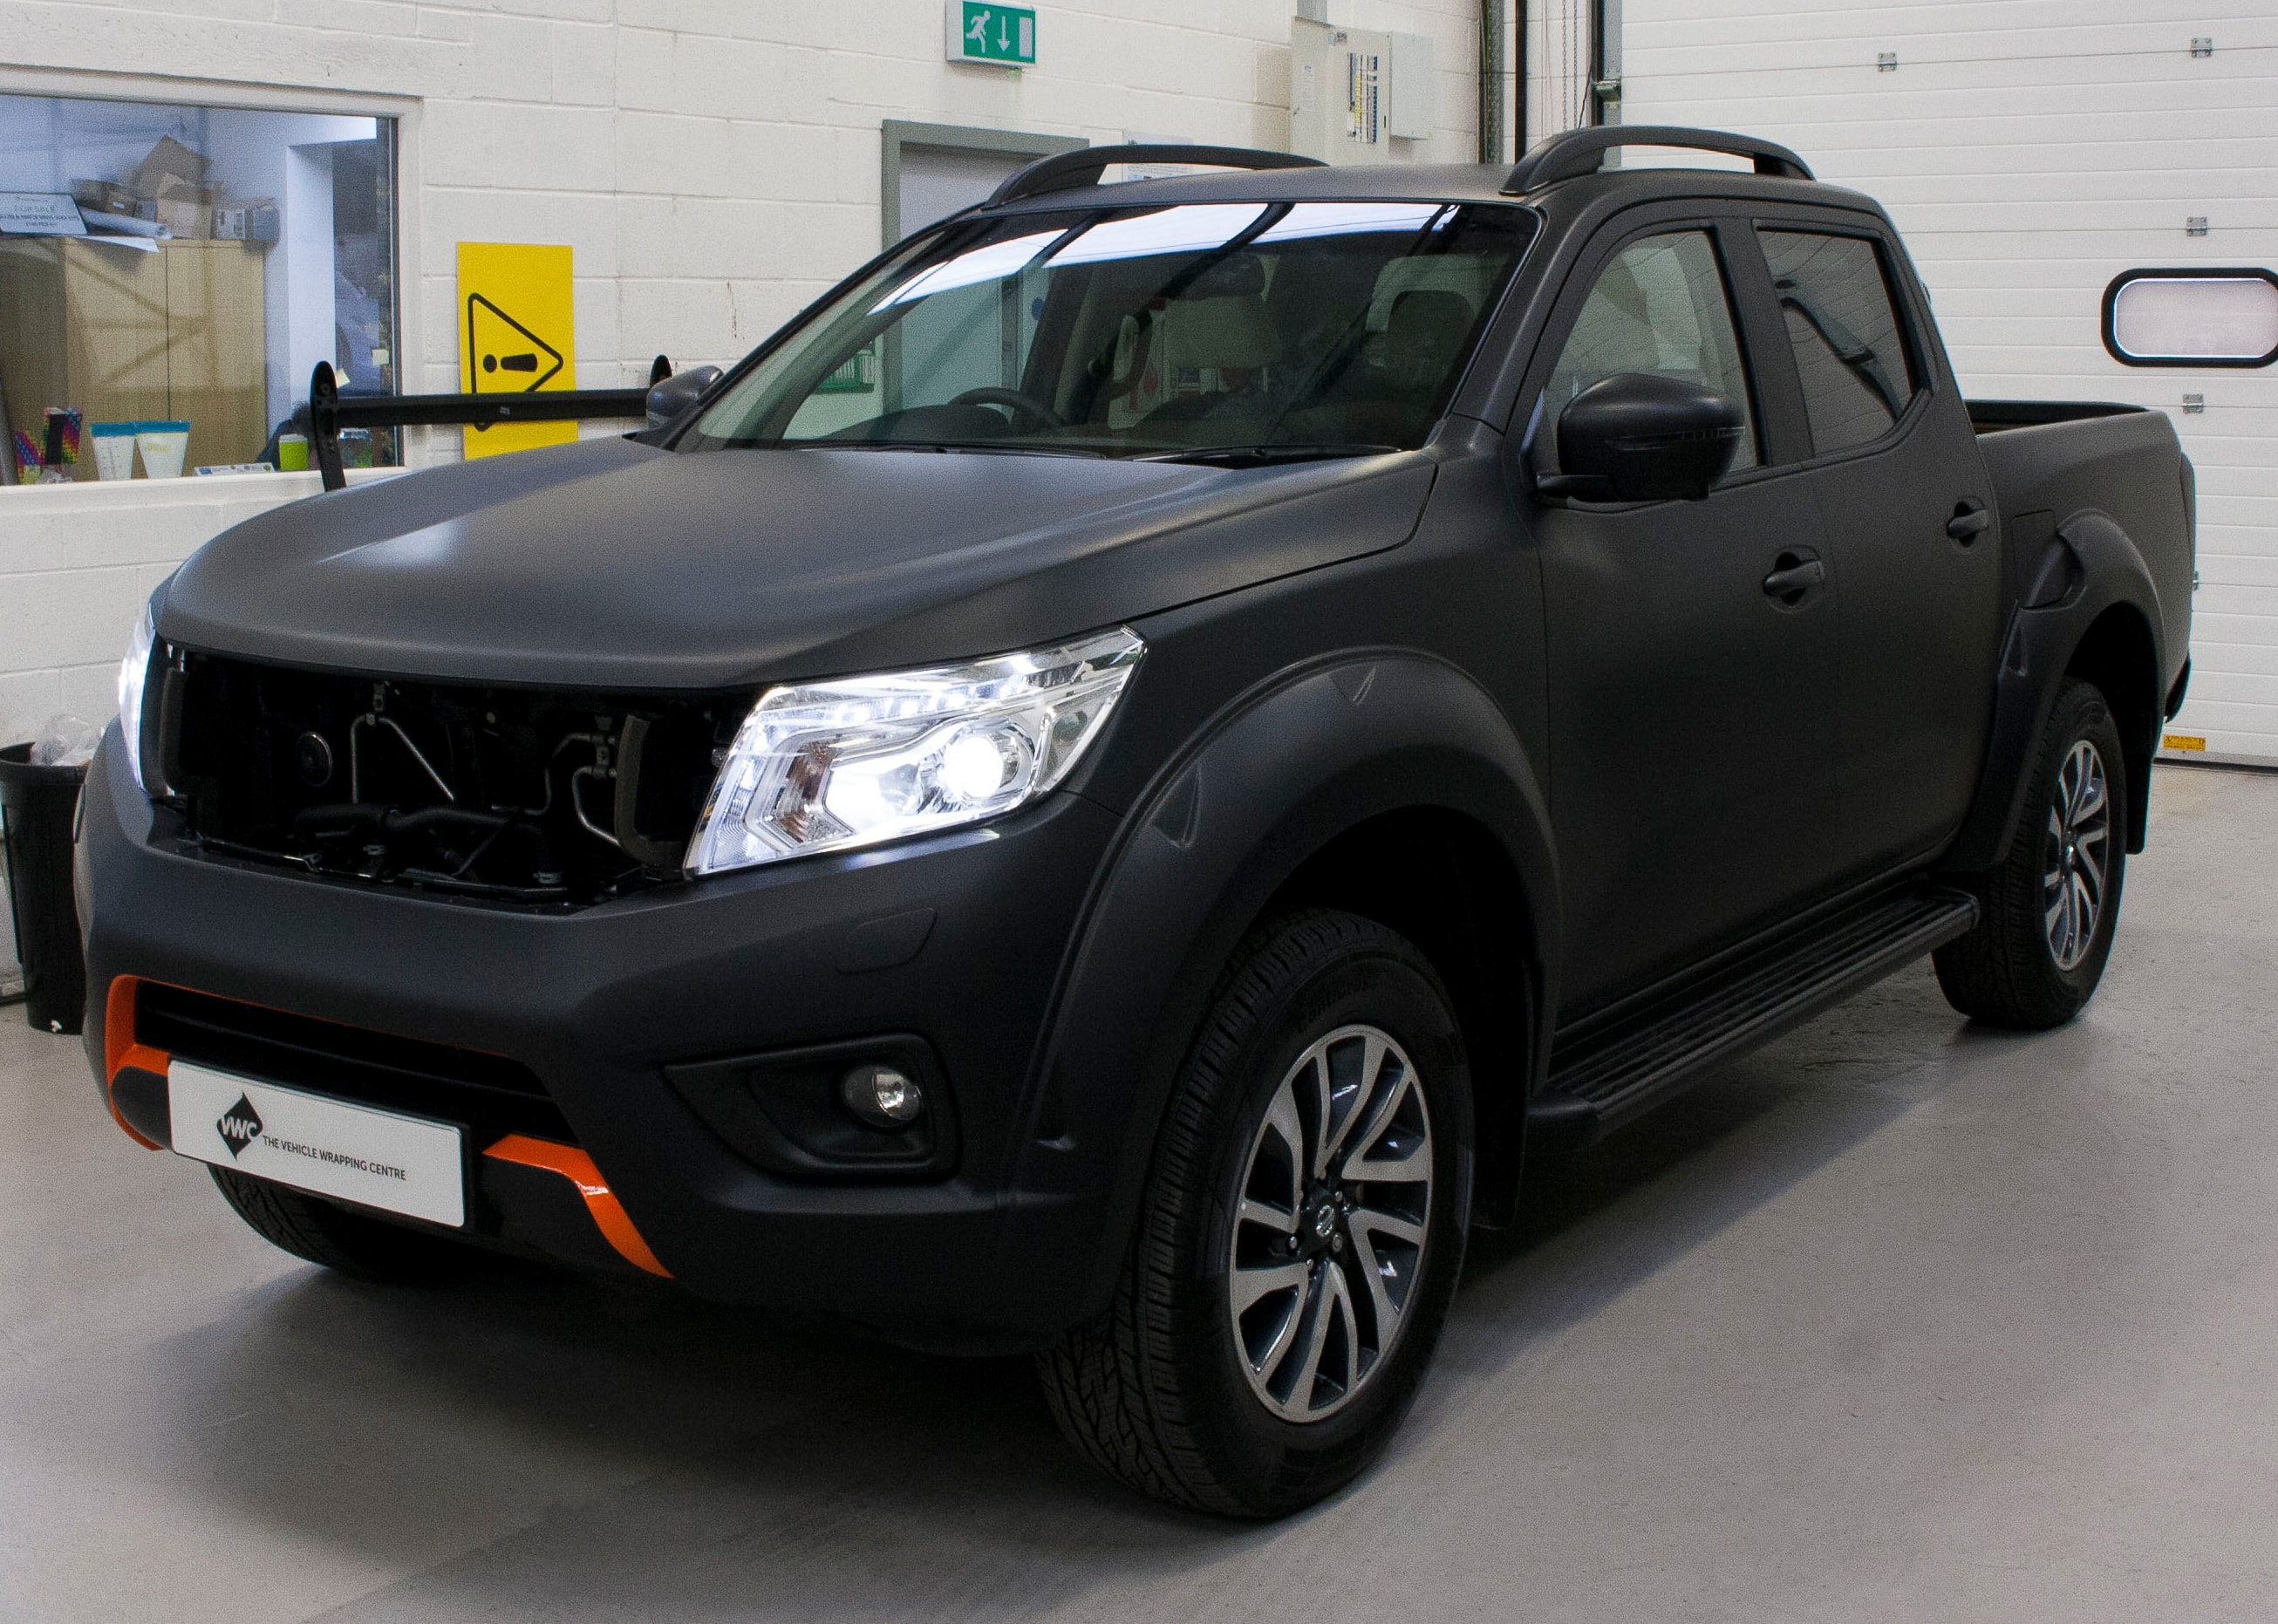 Nissan Navara 3m Matte Black Personal Vehicle Wrap Project